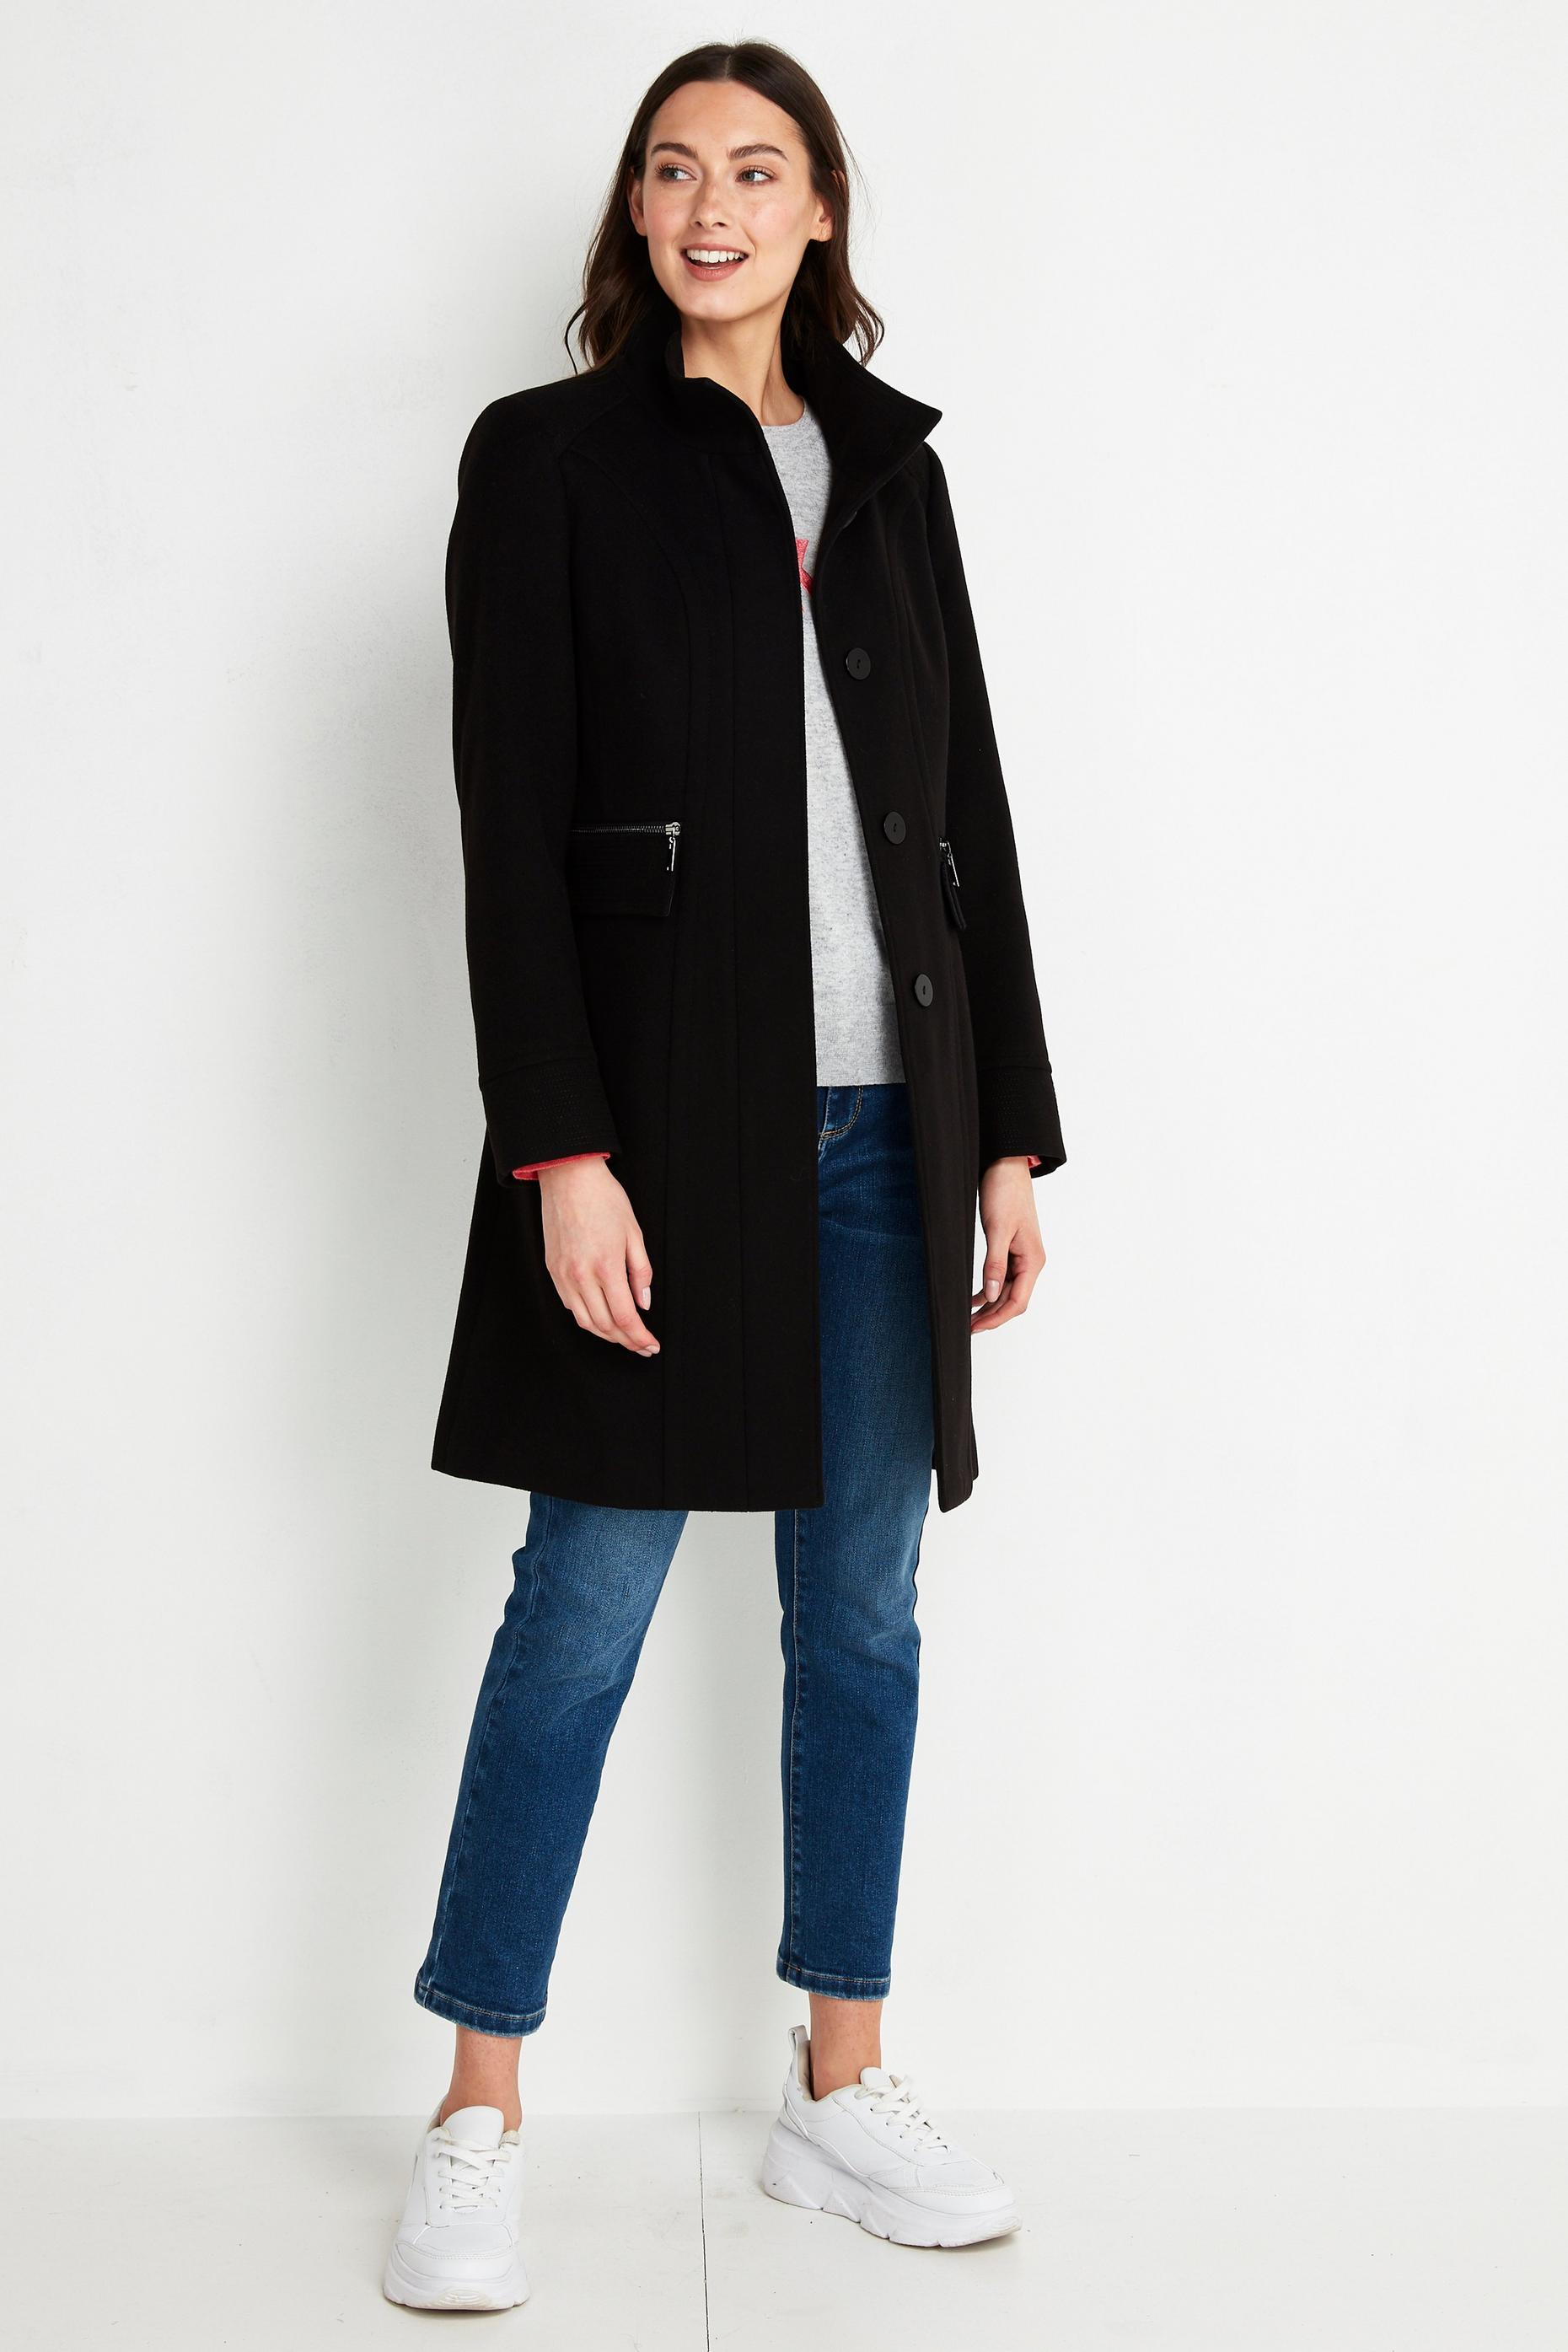 TALL Black Faux Wool Funnel Neck Coat